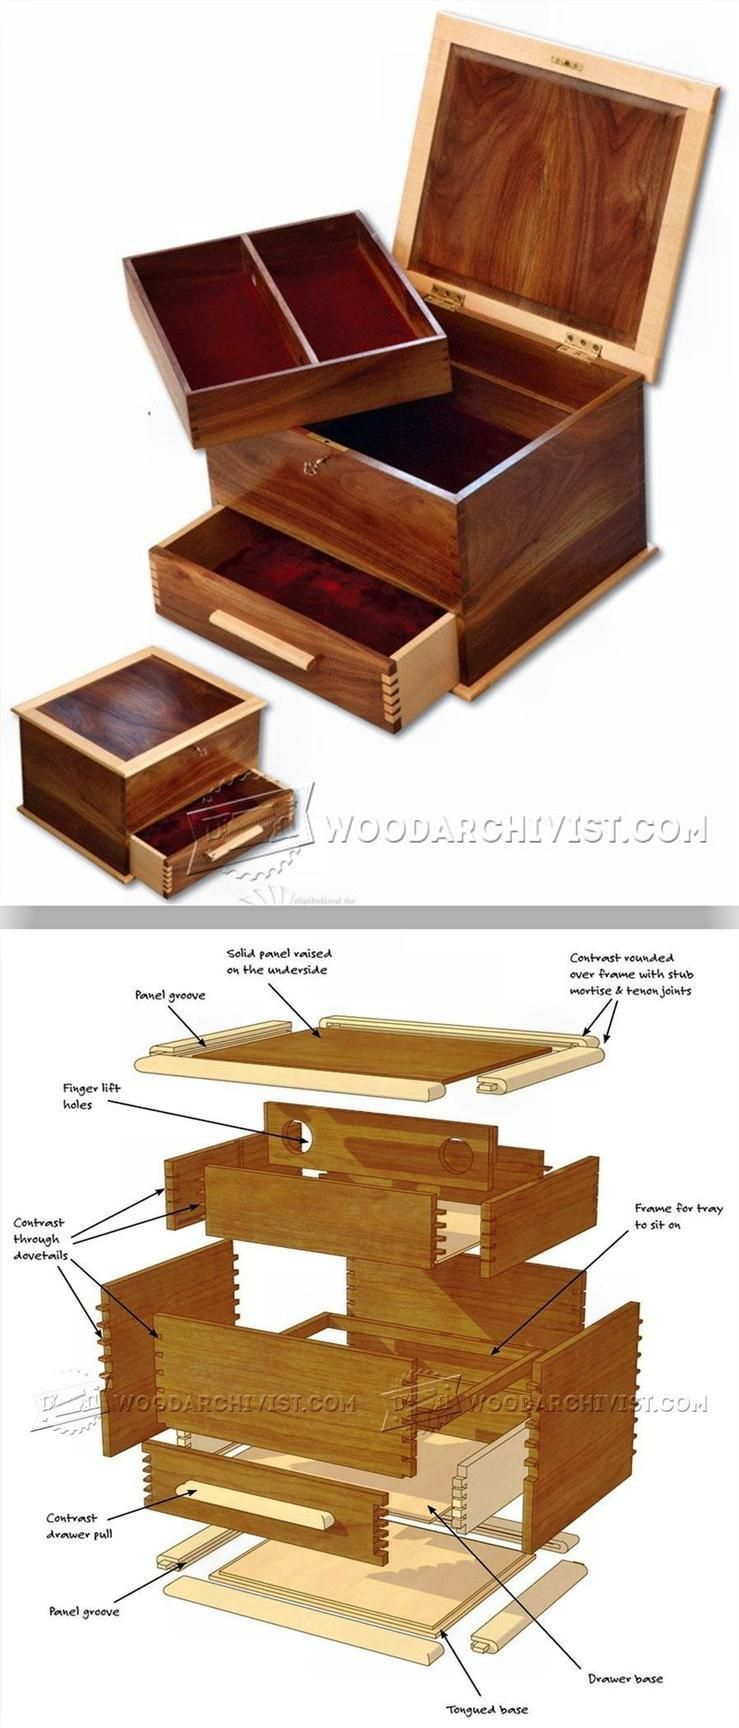 Jewellery Box Plans Woodworking Plans And Projects Woodarchivist Com Http Woodworkingstepbyst Jewelry Box Plans Woodworking Projects Diy Wood Jewelry Box